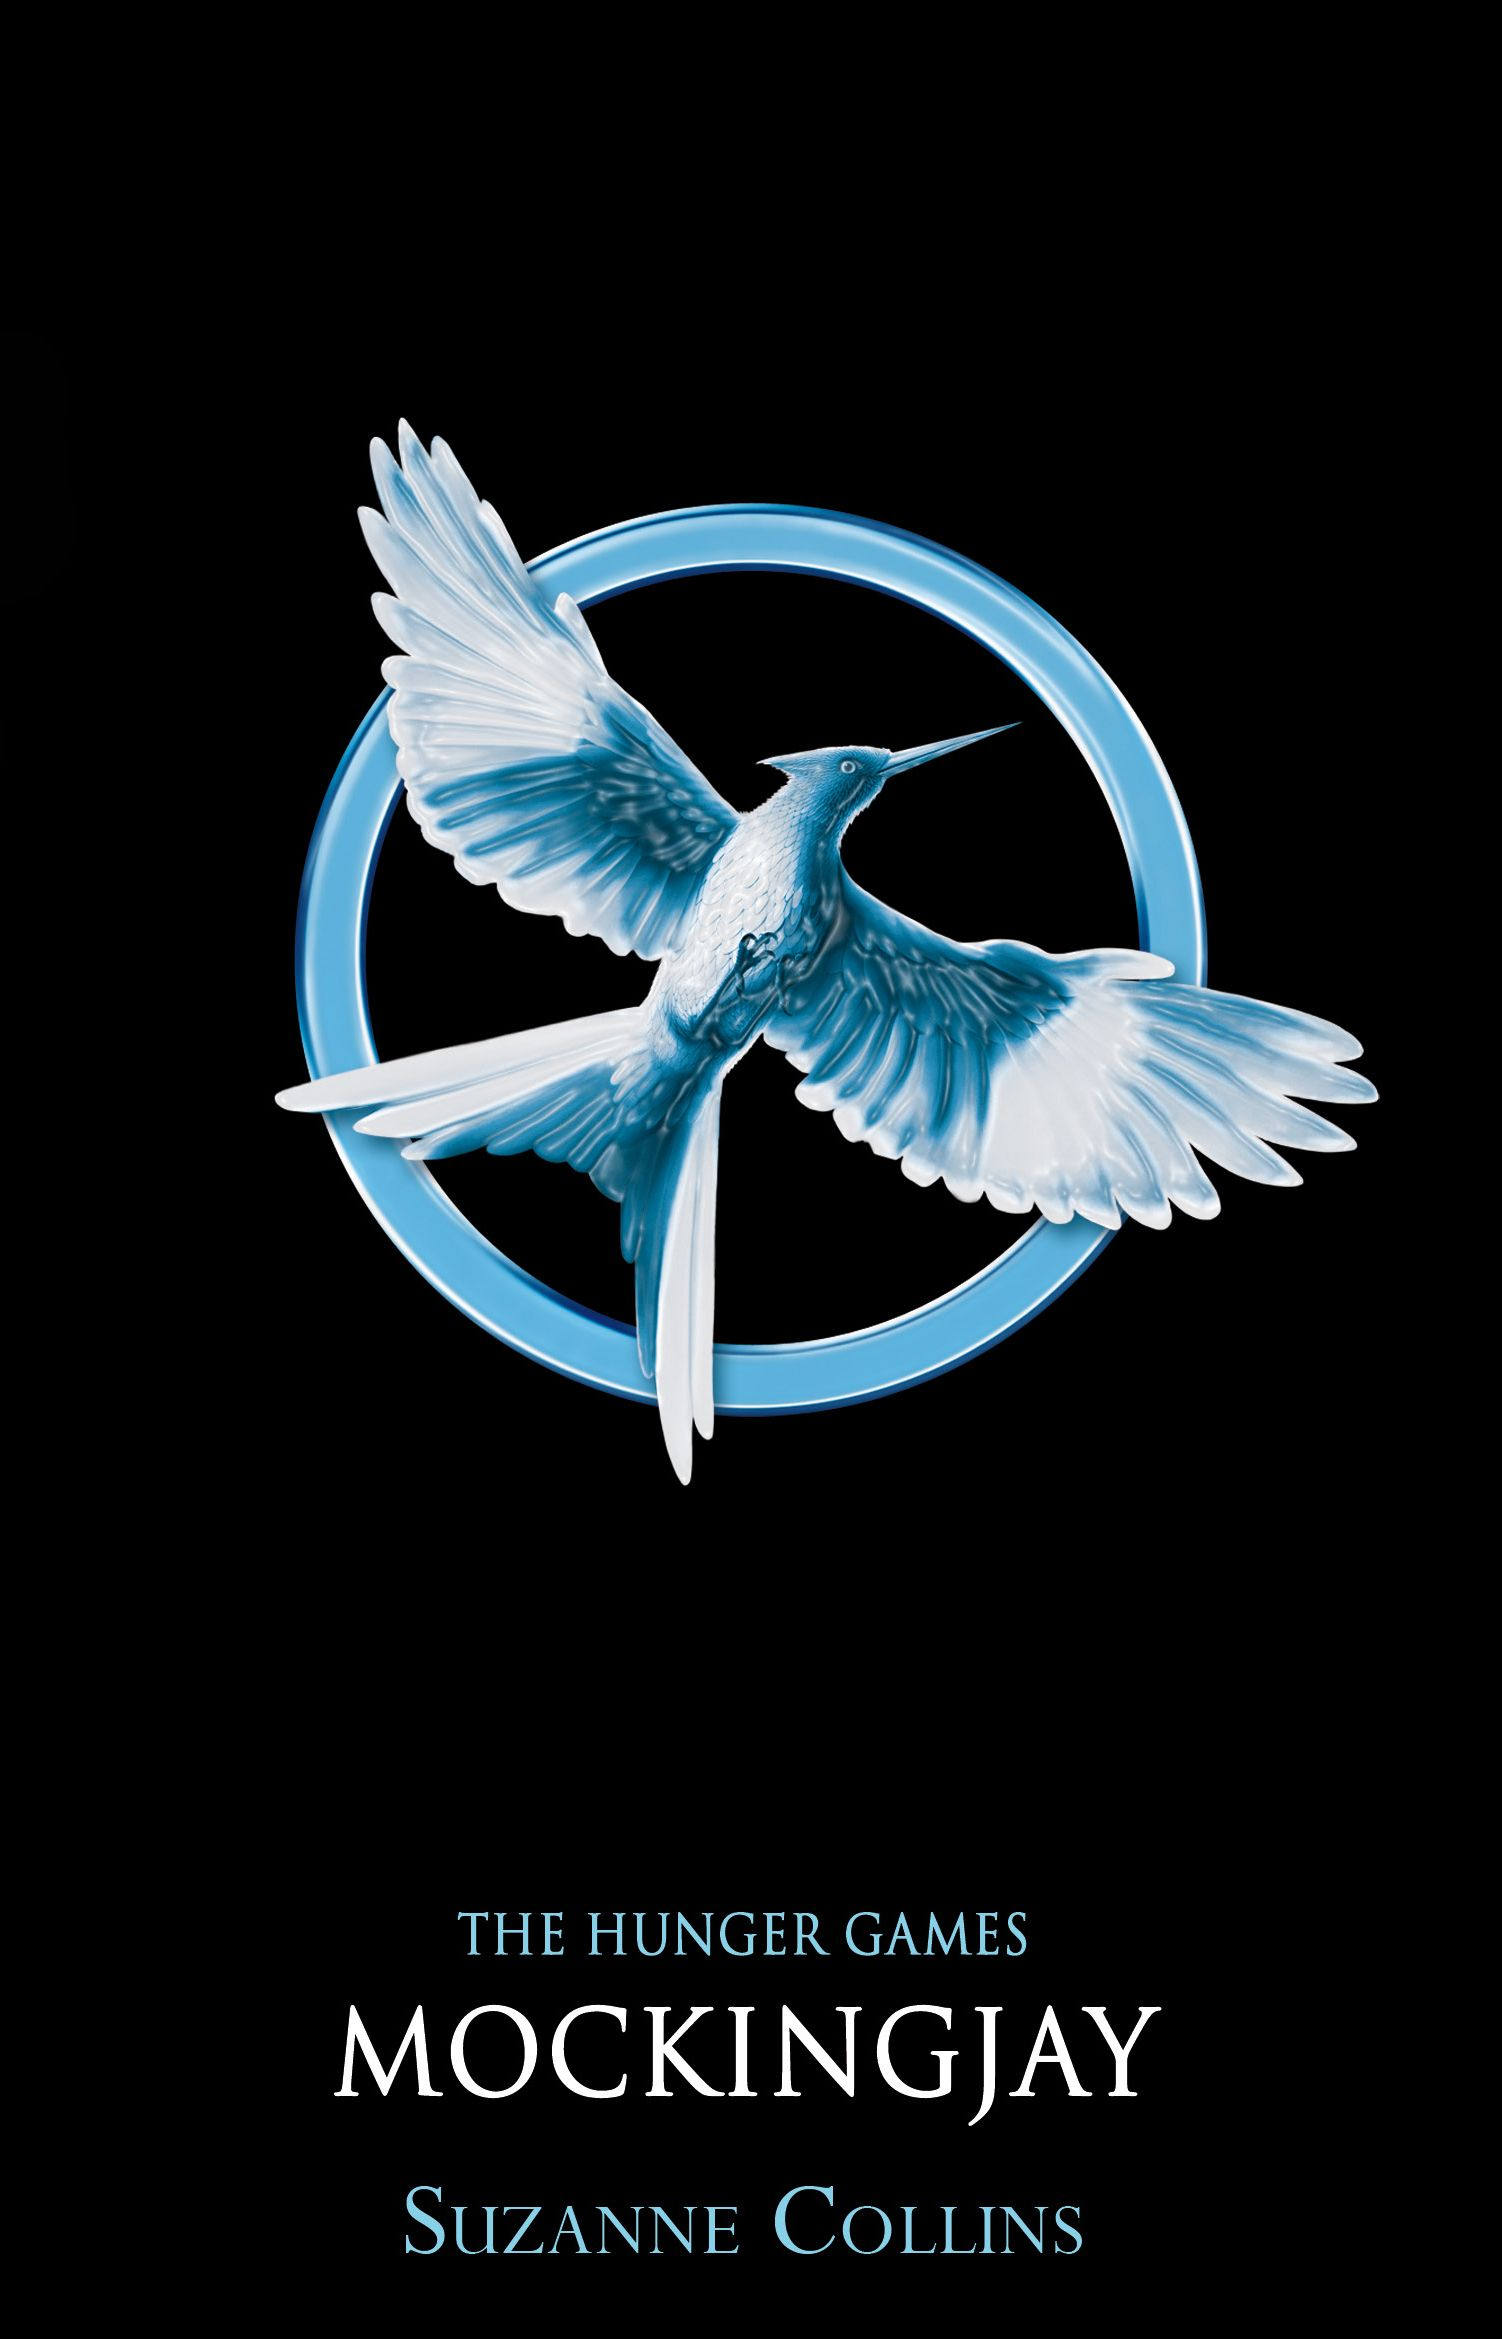 Suzanne collins mockingjay the hunger games 3 hunger games the hunger games mockingjay suzanne collins after reading the first and second books in a matter of days and with the cliff hanger biocorpaavc Choice Image